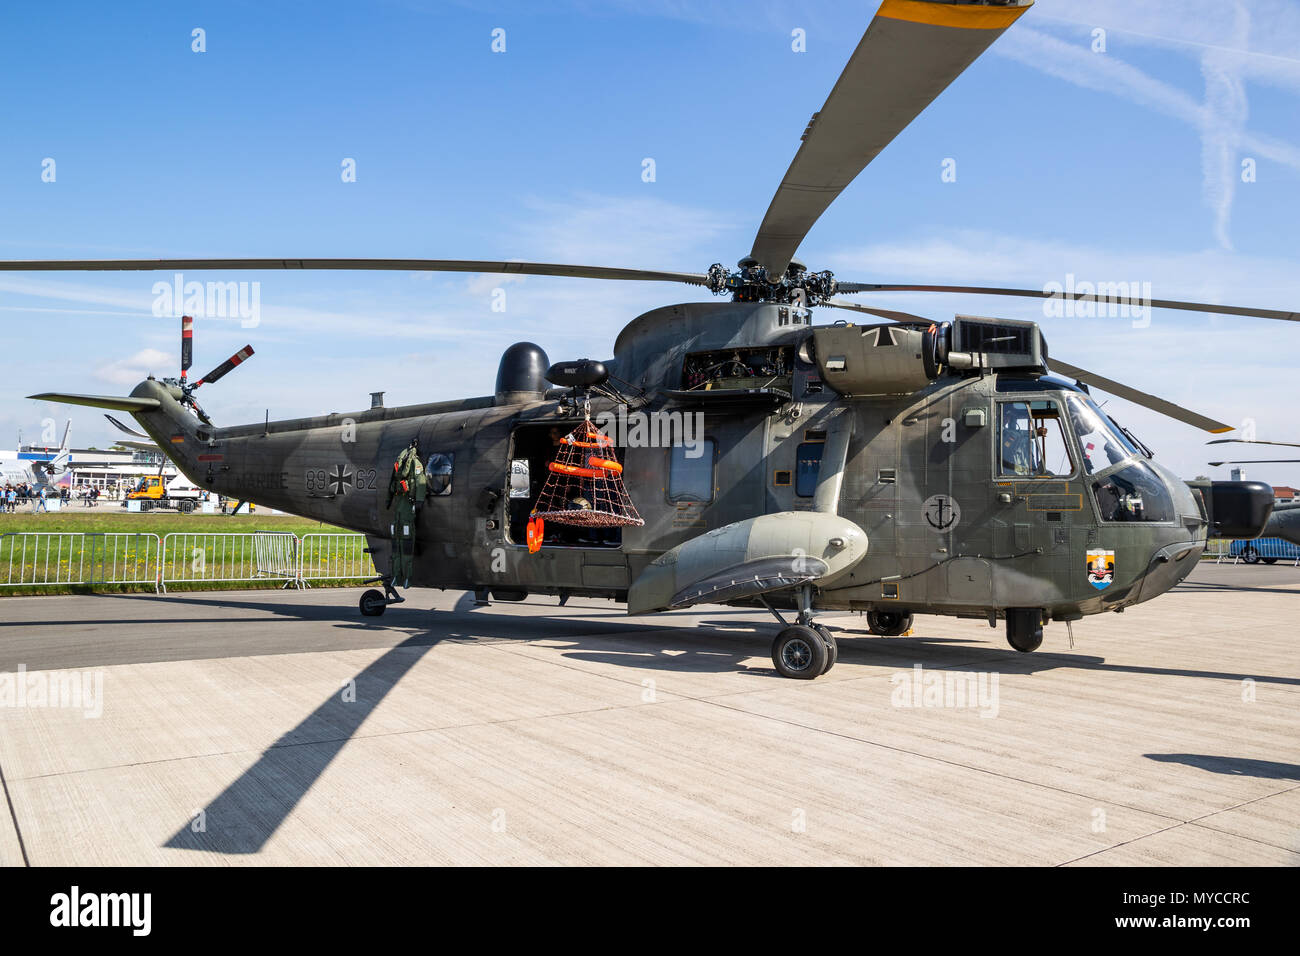 BERLIN, GERMANY - APR 27, 2018: German Navy Sikorsky Sea King rescue helicopter from MFG-5 on display at the Berlin ILA Air Show. - Stock Image